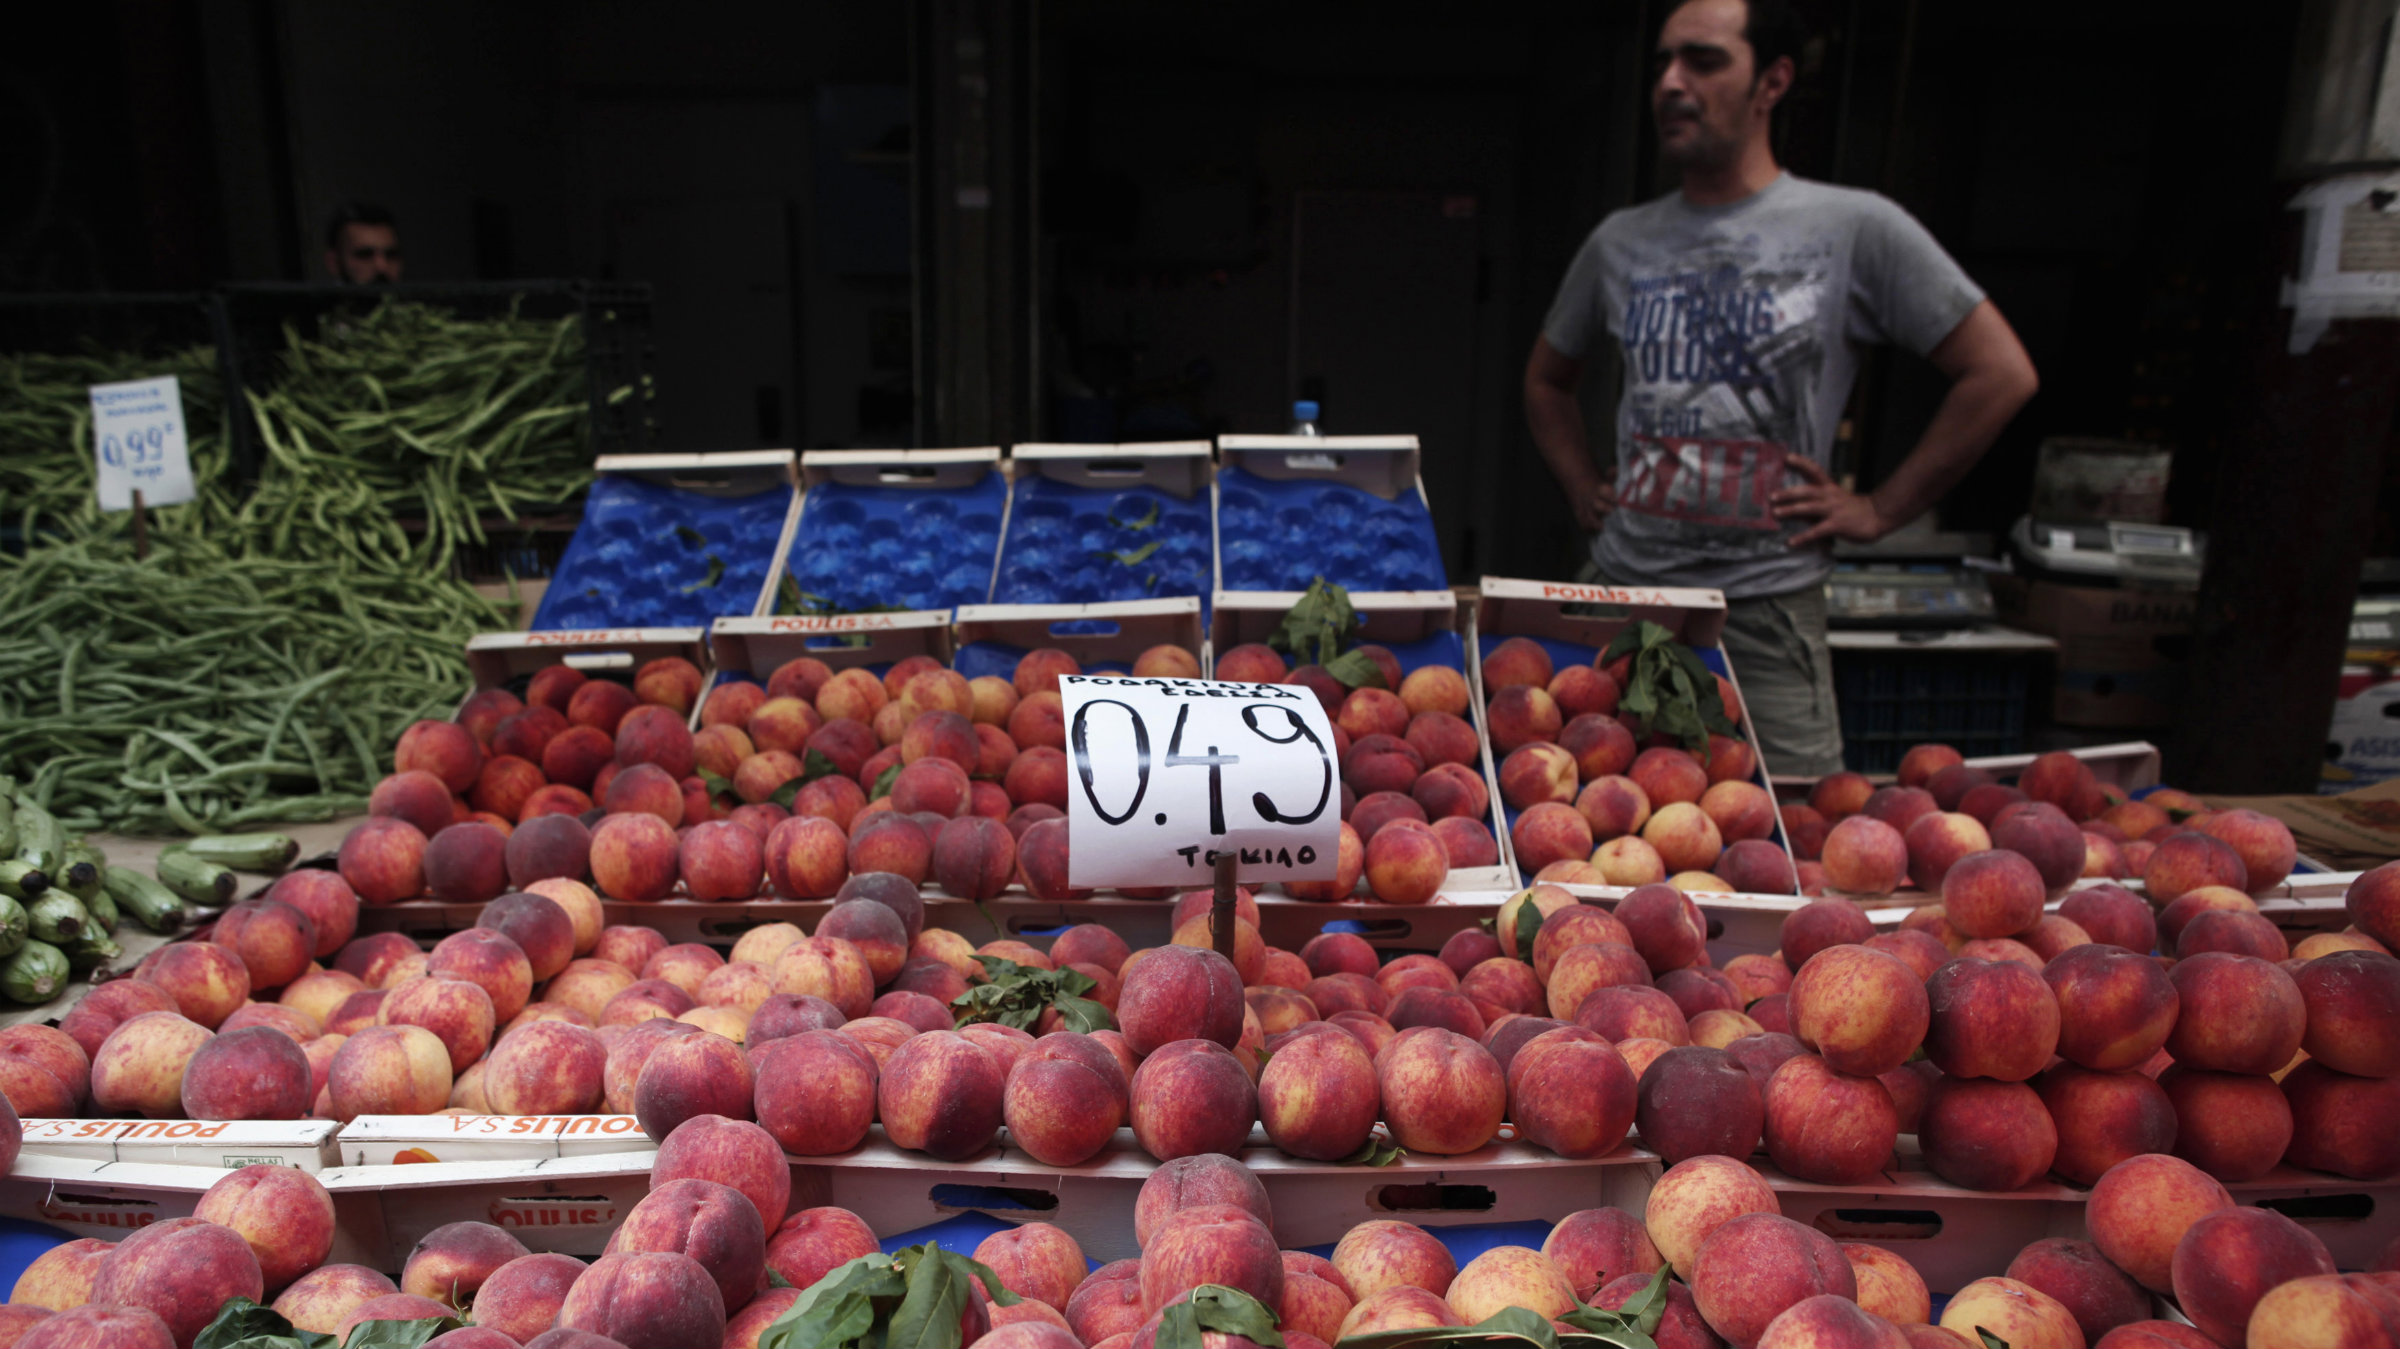 Peaches are displayed on a fruit vendor's stall at a grocery market in Athens.